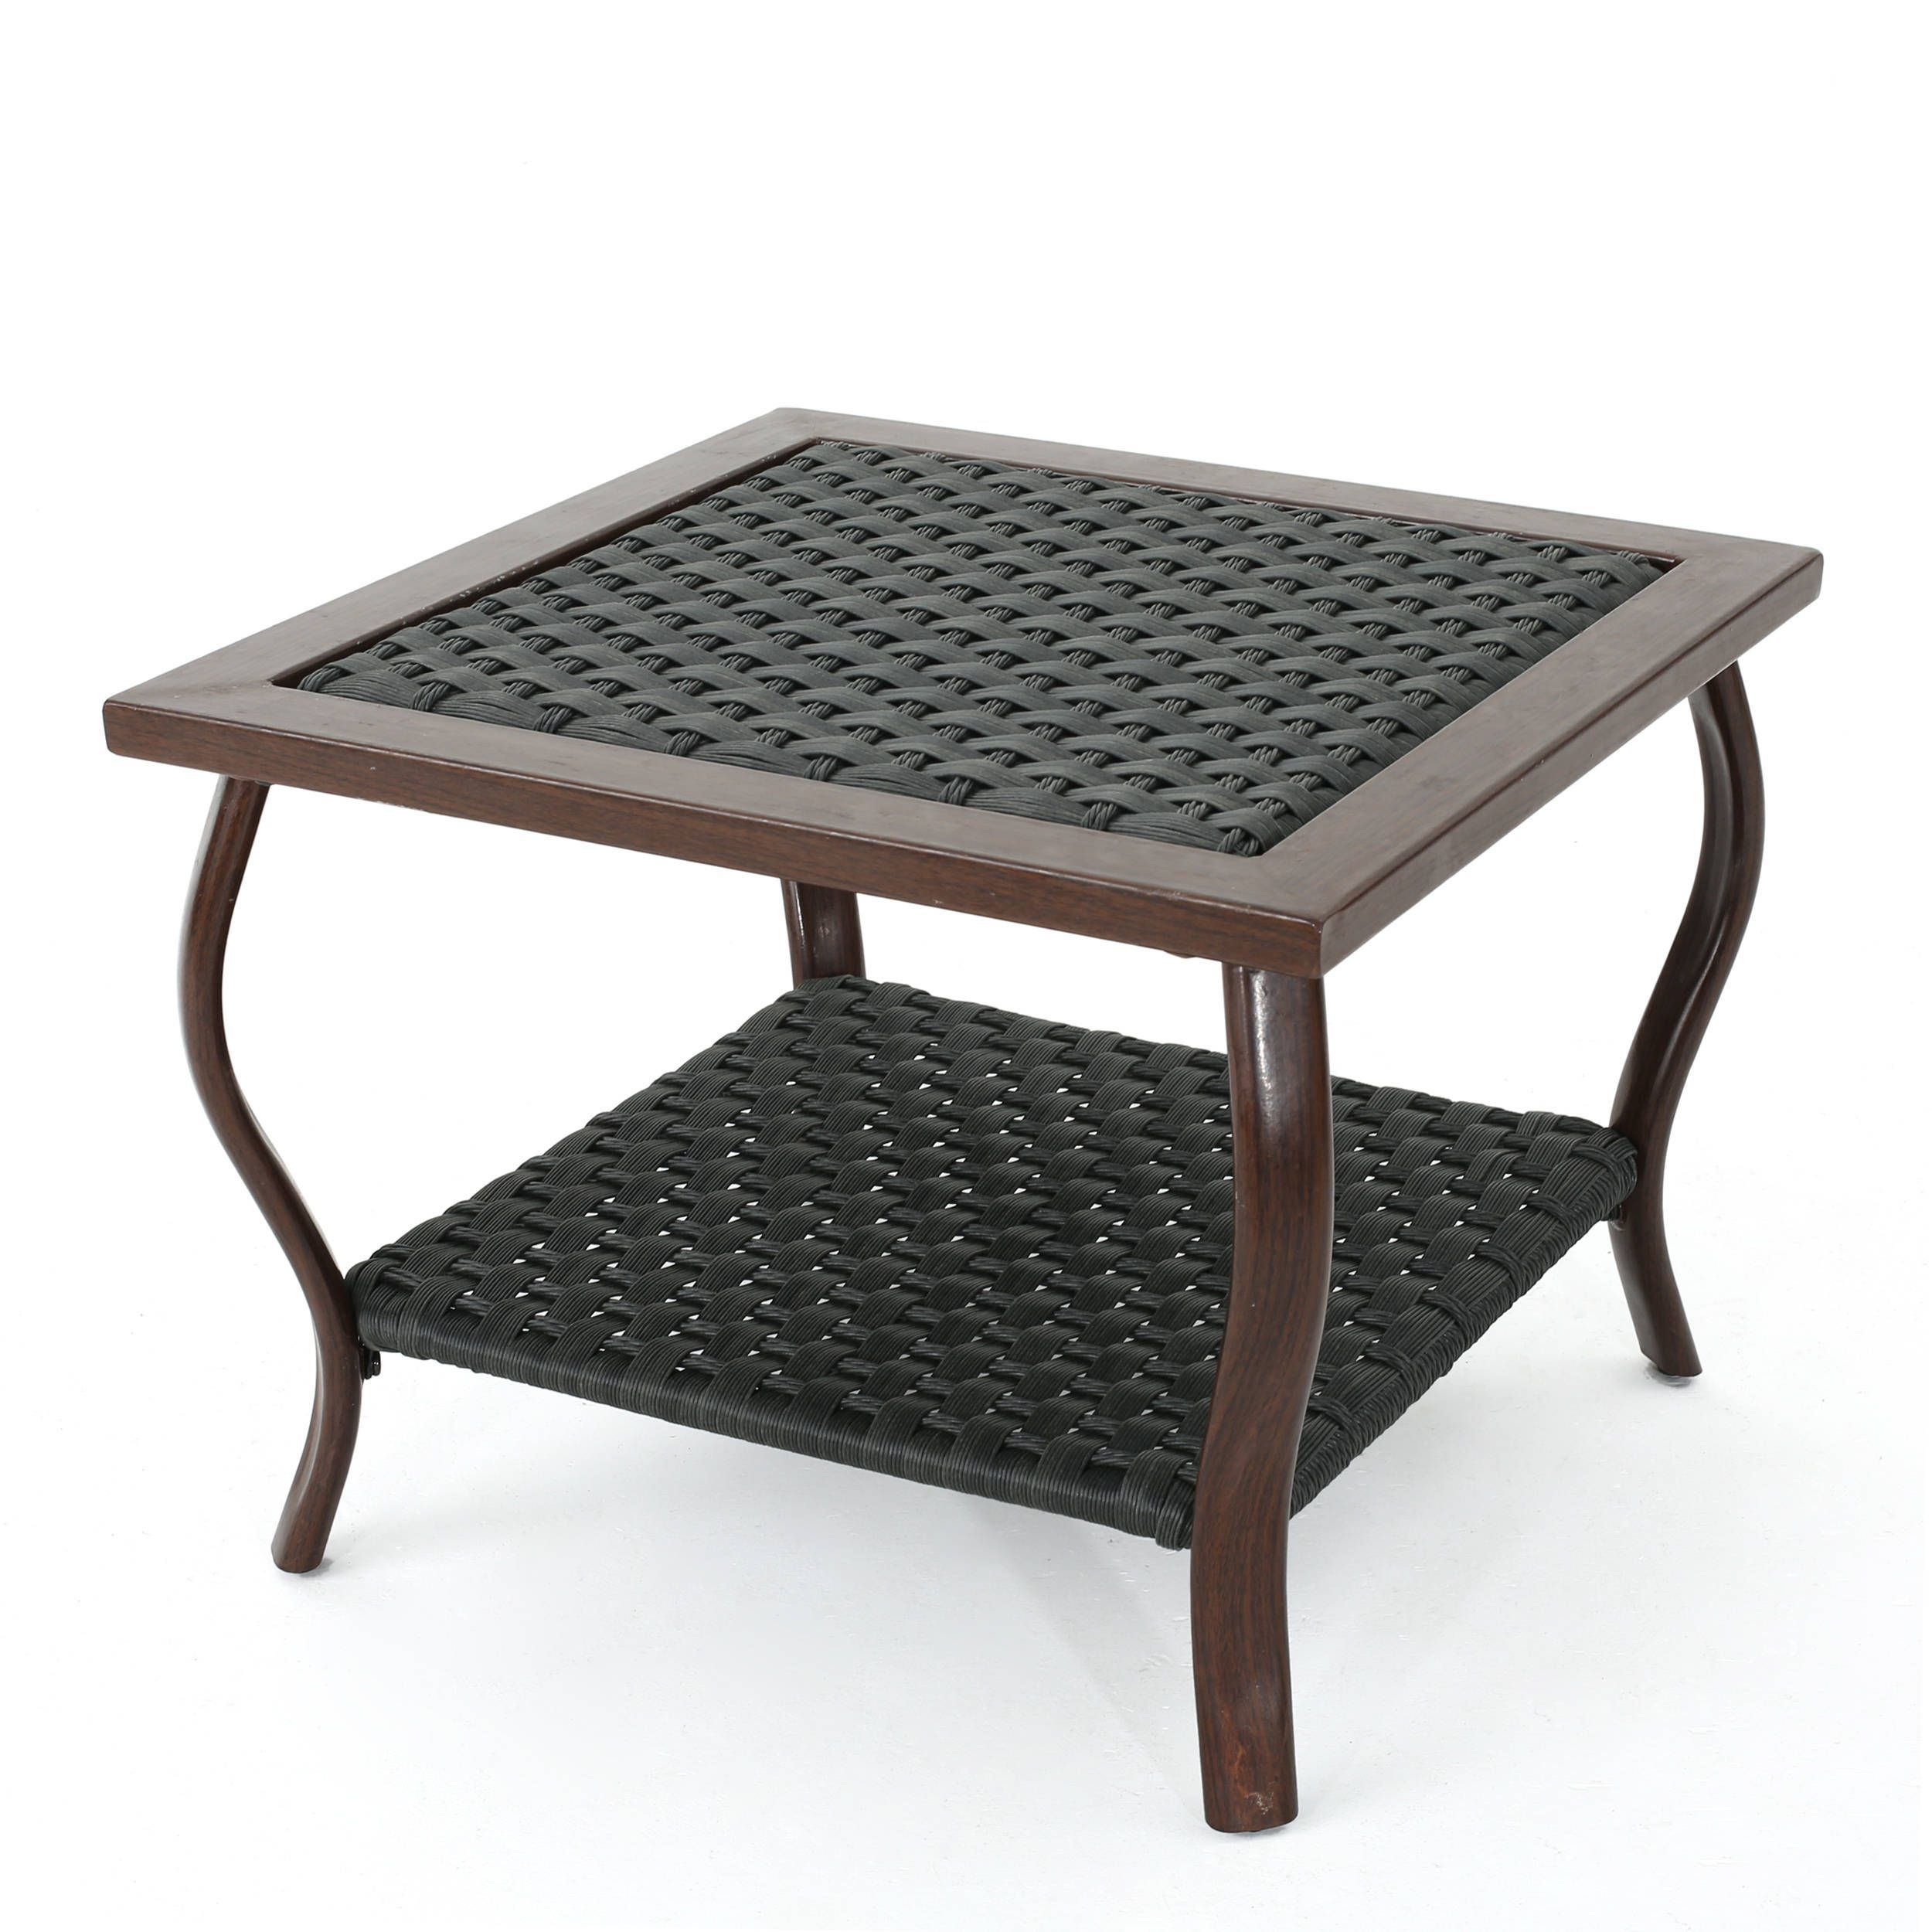 Overstock Com Online Shopping Bedding Furniture Electronics Jewelry Clothing More Wicker Coffee Table Coffee Table Outdoor Wicker